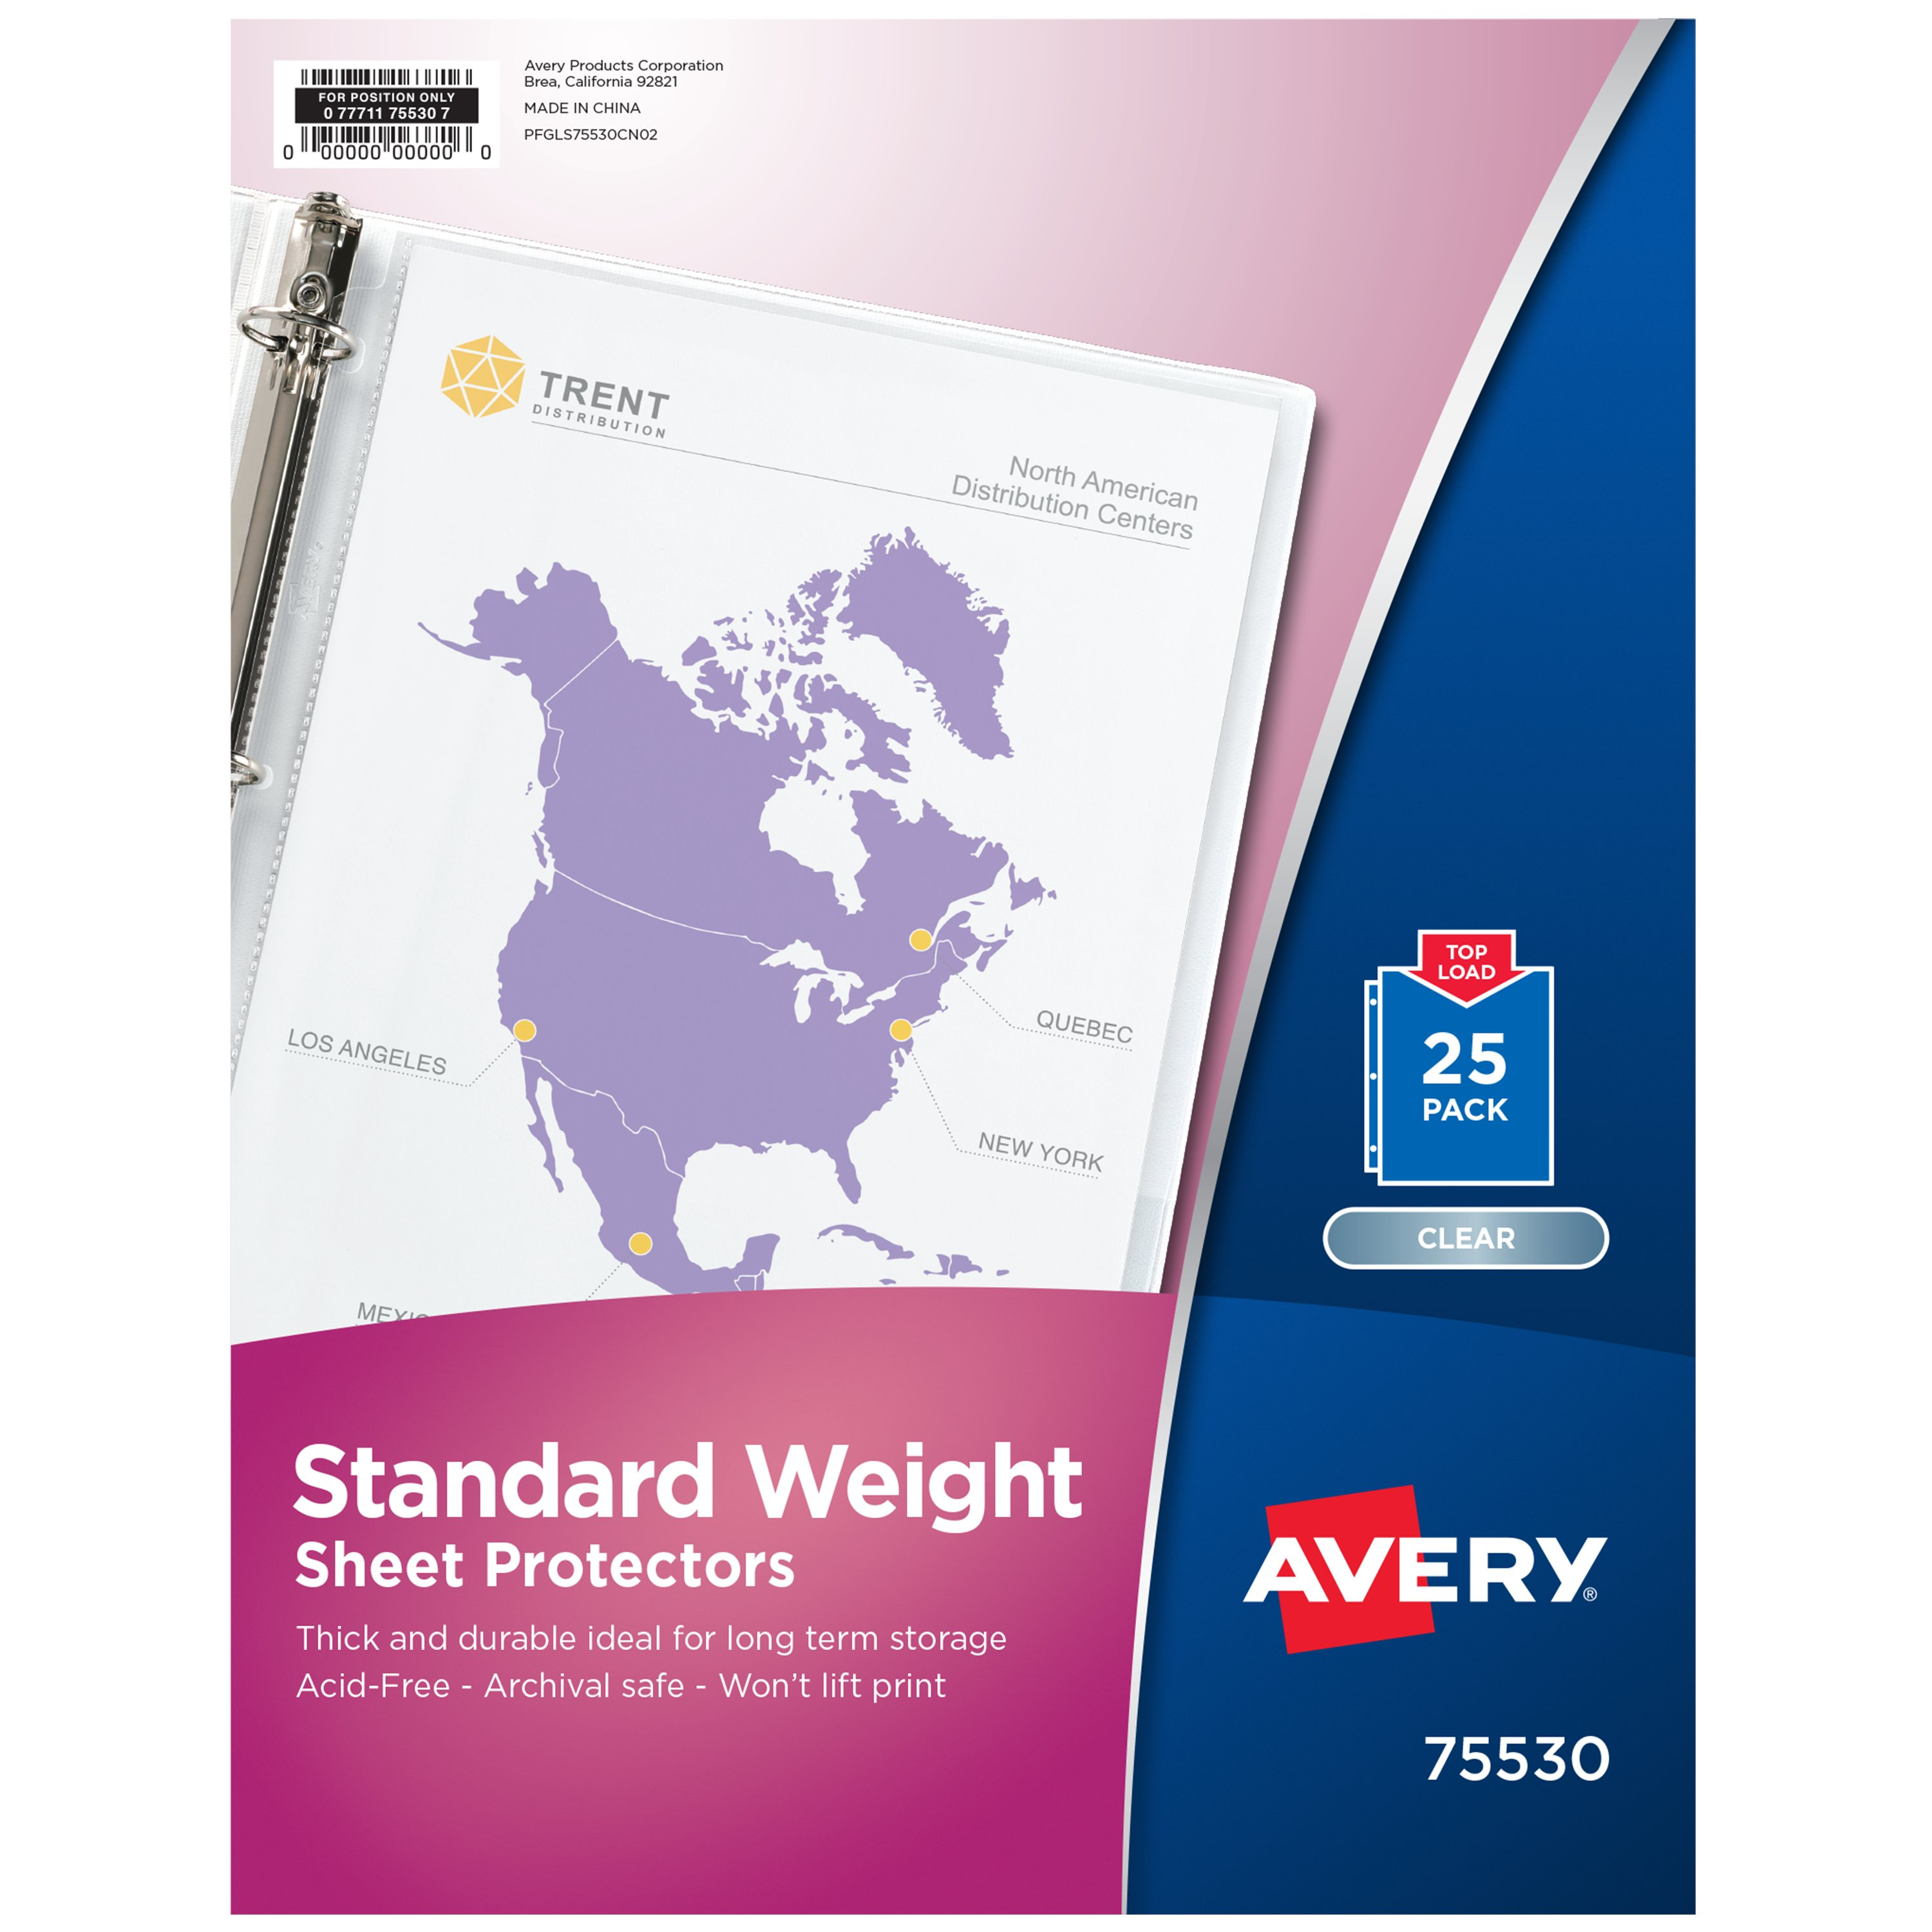 Avery standard weight clear sheet protectors shop dividers avery standard weight clear sheet protectors shop dividers labels at heb reheart Choice Image